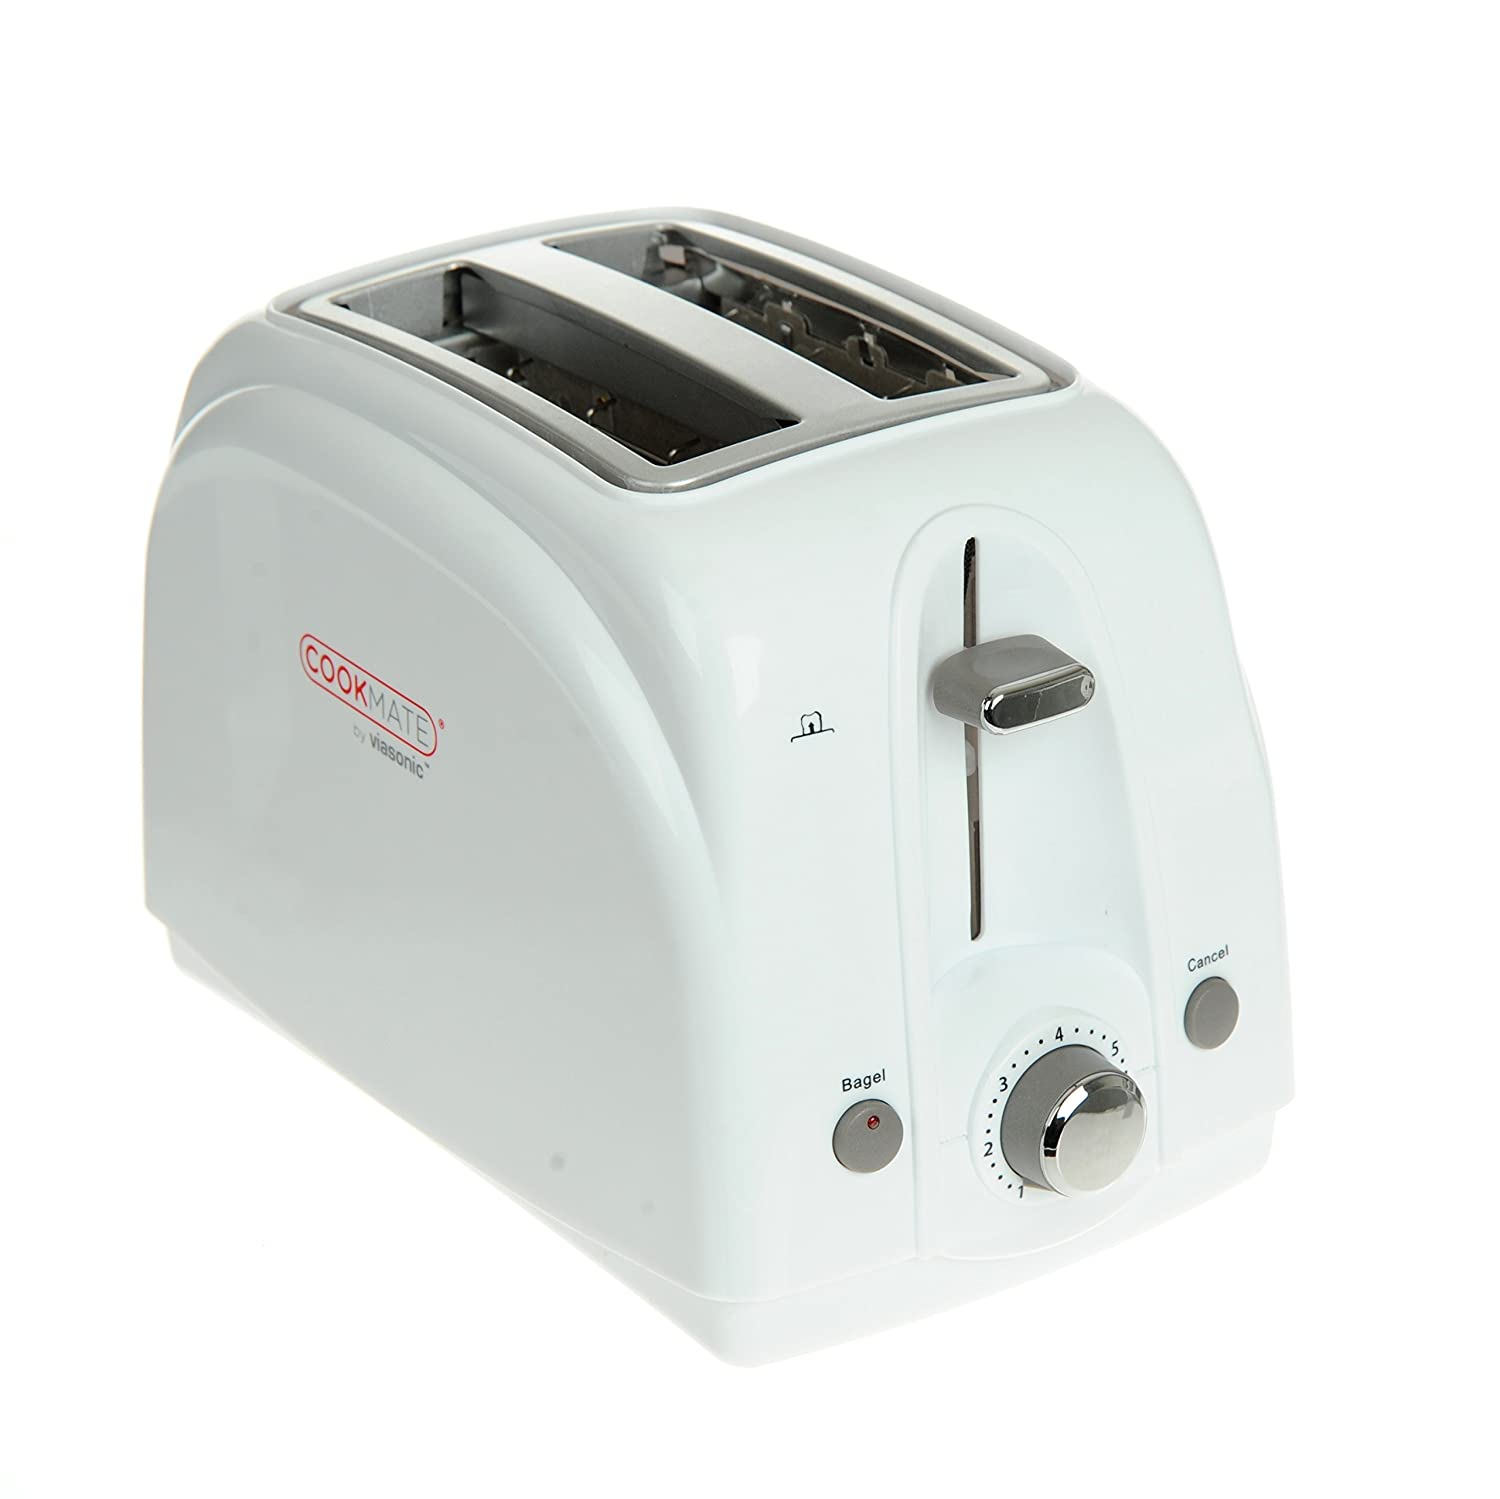 Cookmate 2-Slice Toaster, 7 Temperature Levels, Sleek Unibody Frame - Quick Bagel Button - 750W ETL-Listed, By Unity